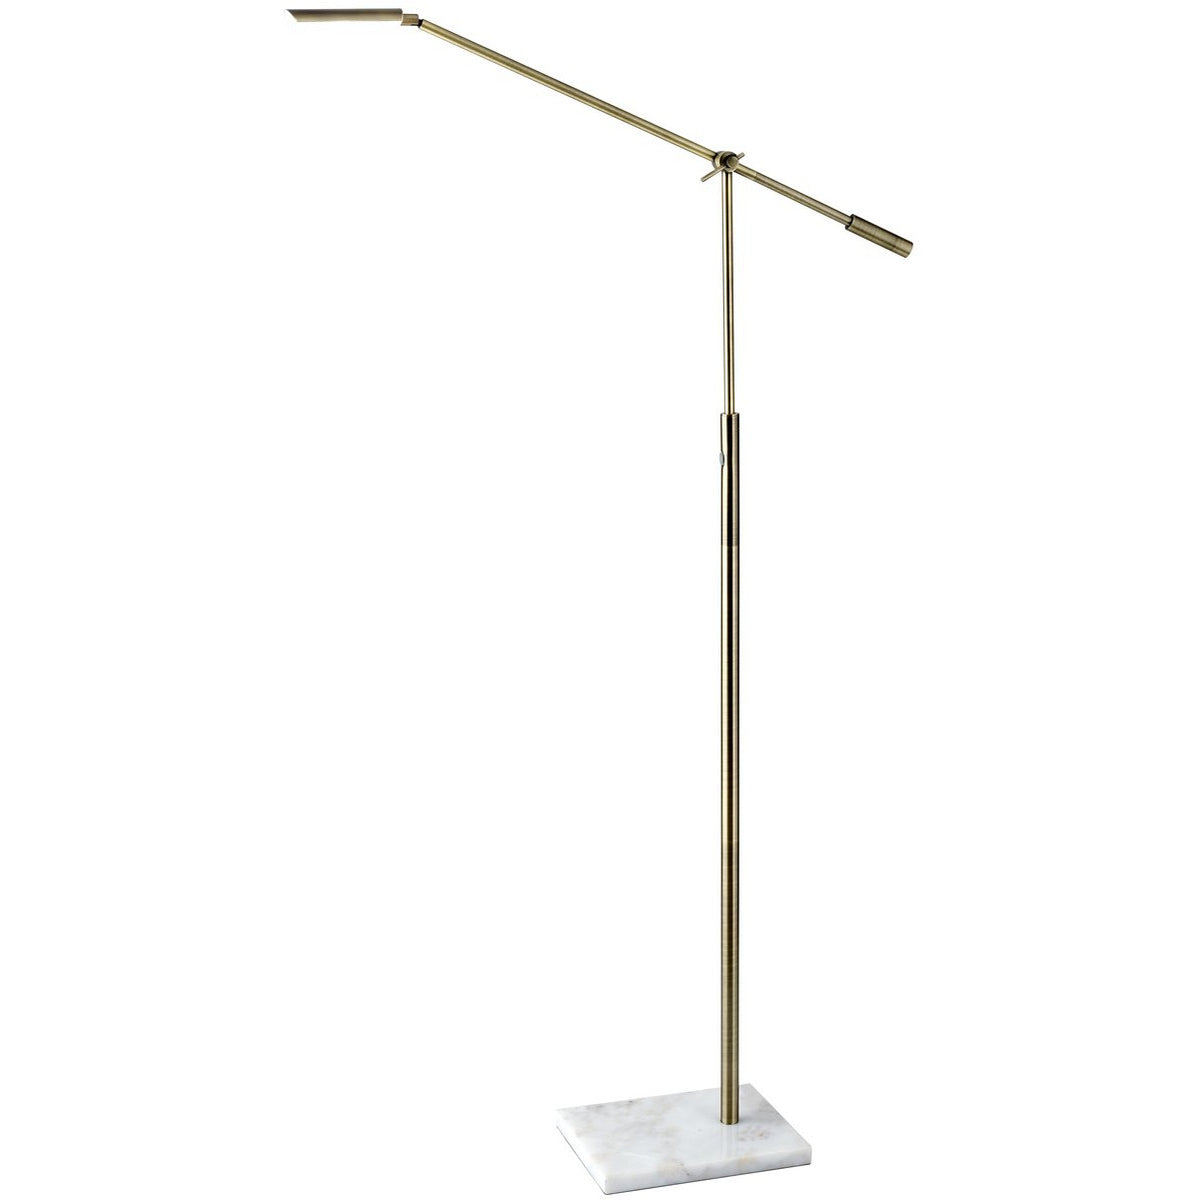 Adesso Home - 4129-21 - LED Floor Lamp - Vera - Antique Brass